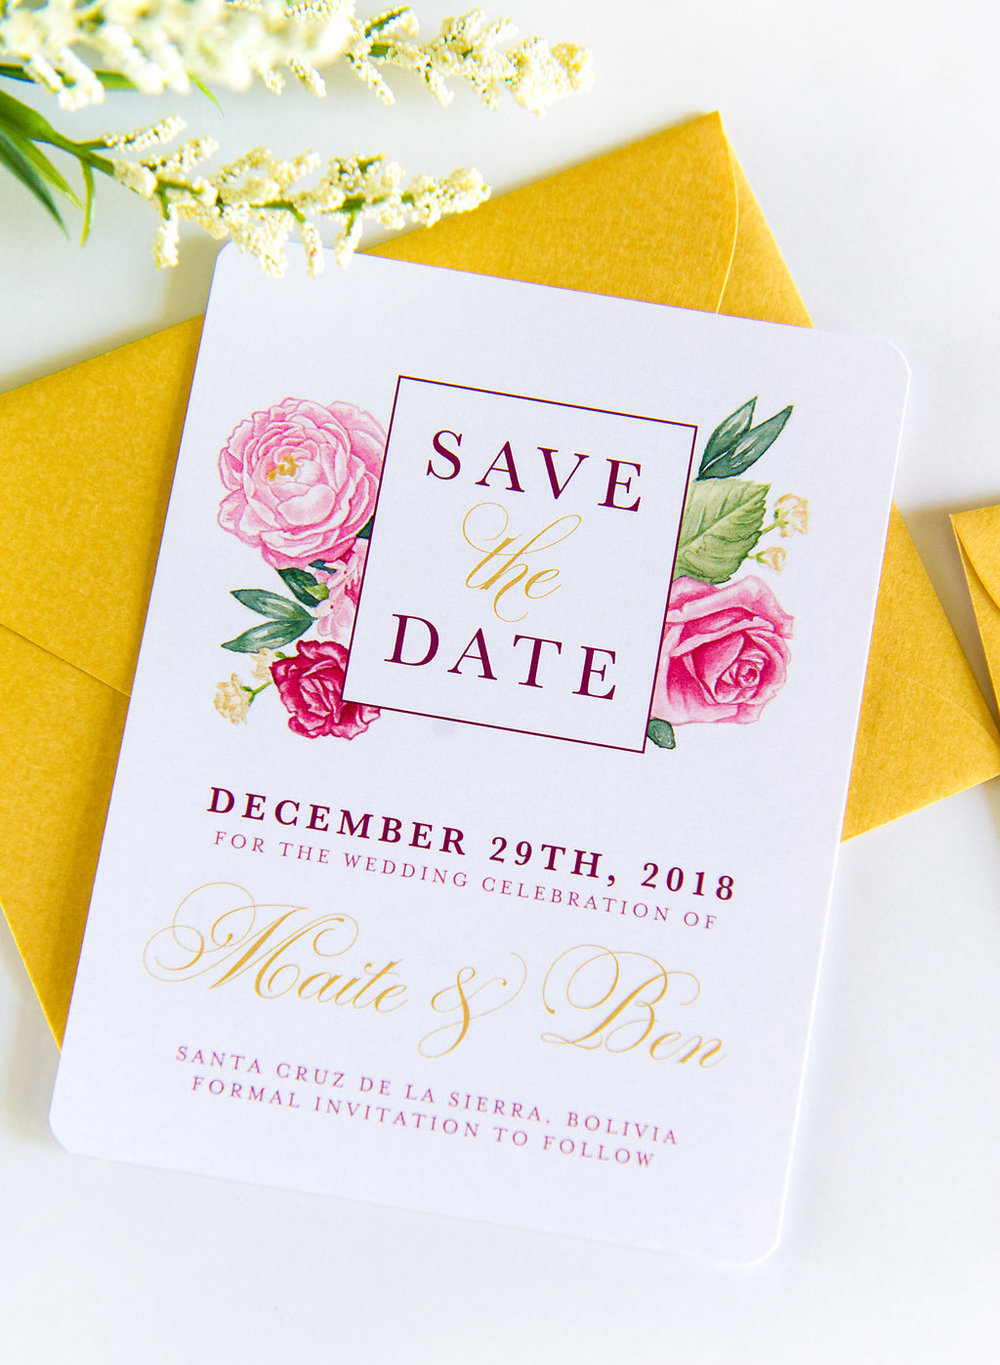 Floral Save the Date - This floral Save the Date was inspired by the couple's wedding flowers and colors. With a matching gold envelope, custom gold shimmer in the flowers and a matching return address stamp, this design came together beautifully!With versions in both English and Spanish to accommodate all guests and a matching, fun and trendy Bachelorette Party Invite, we just love how the hand painted watercolor florals unite their wedding stationery.